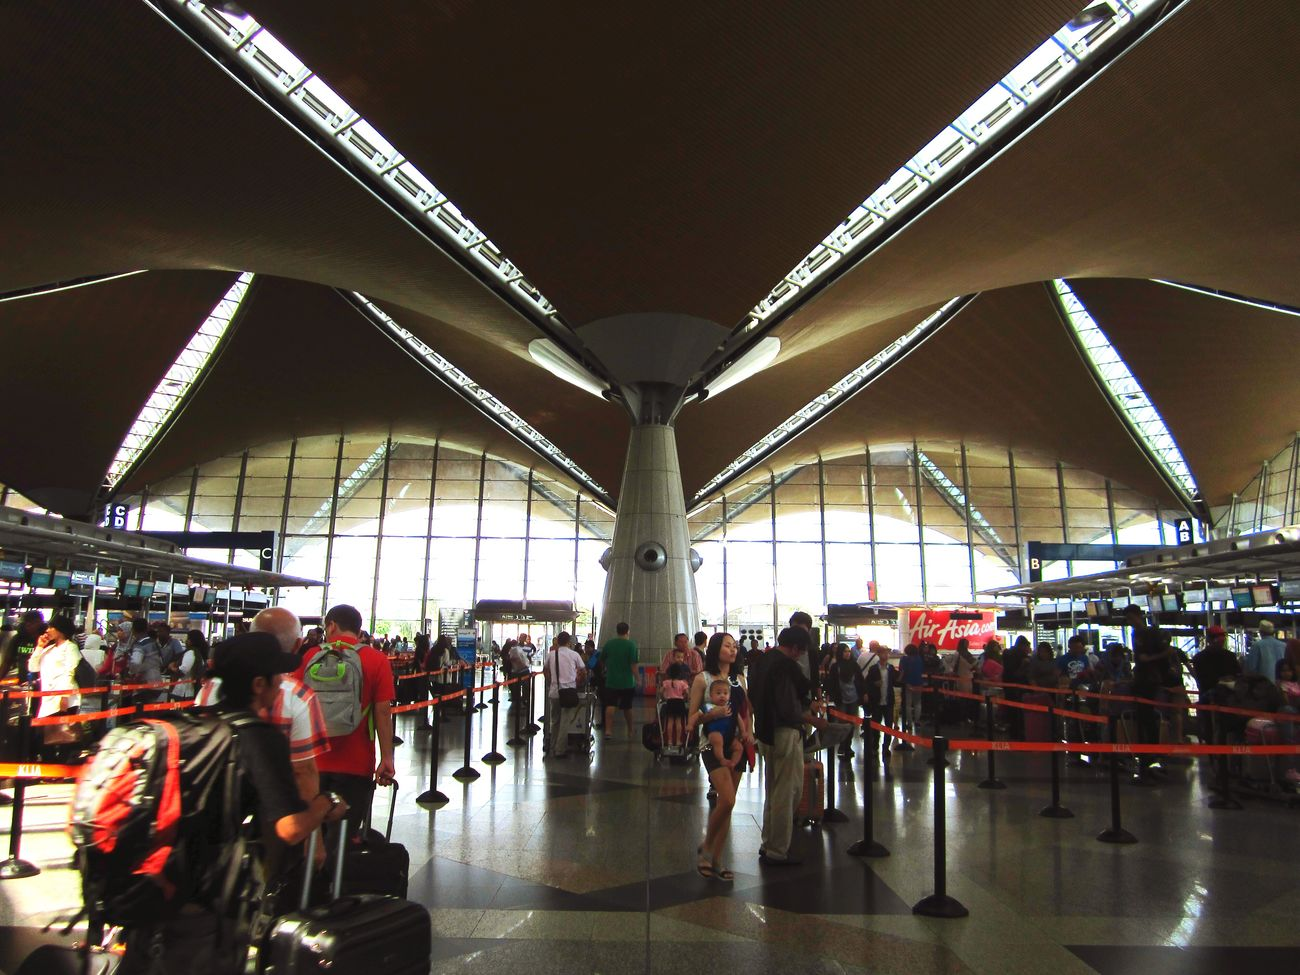 Airport Design Architecture Klia Sepang Travelling Adventure